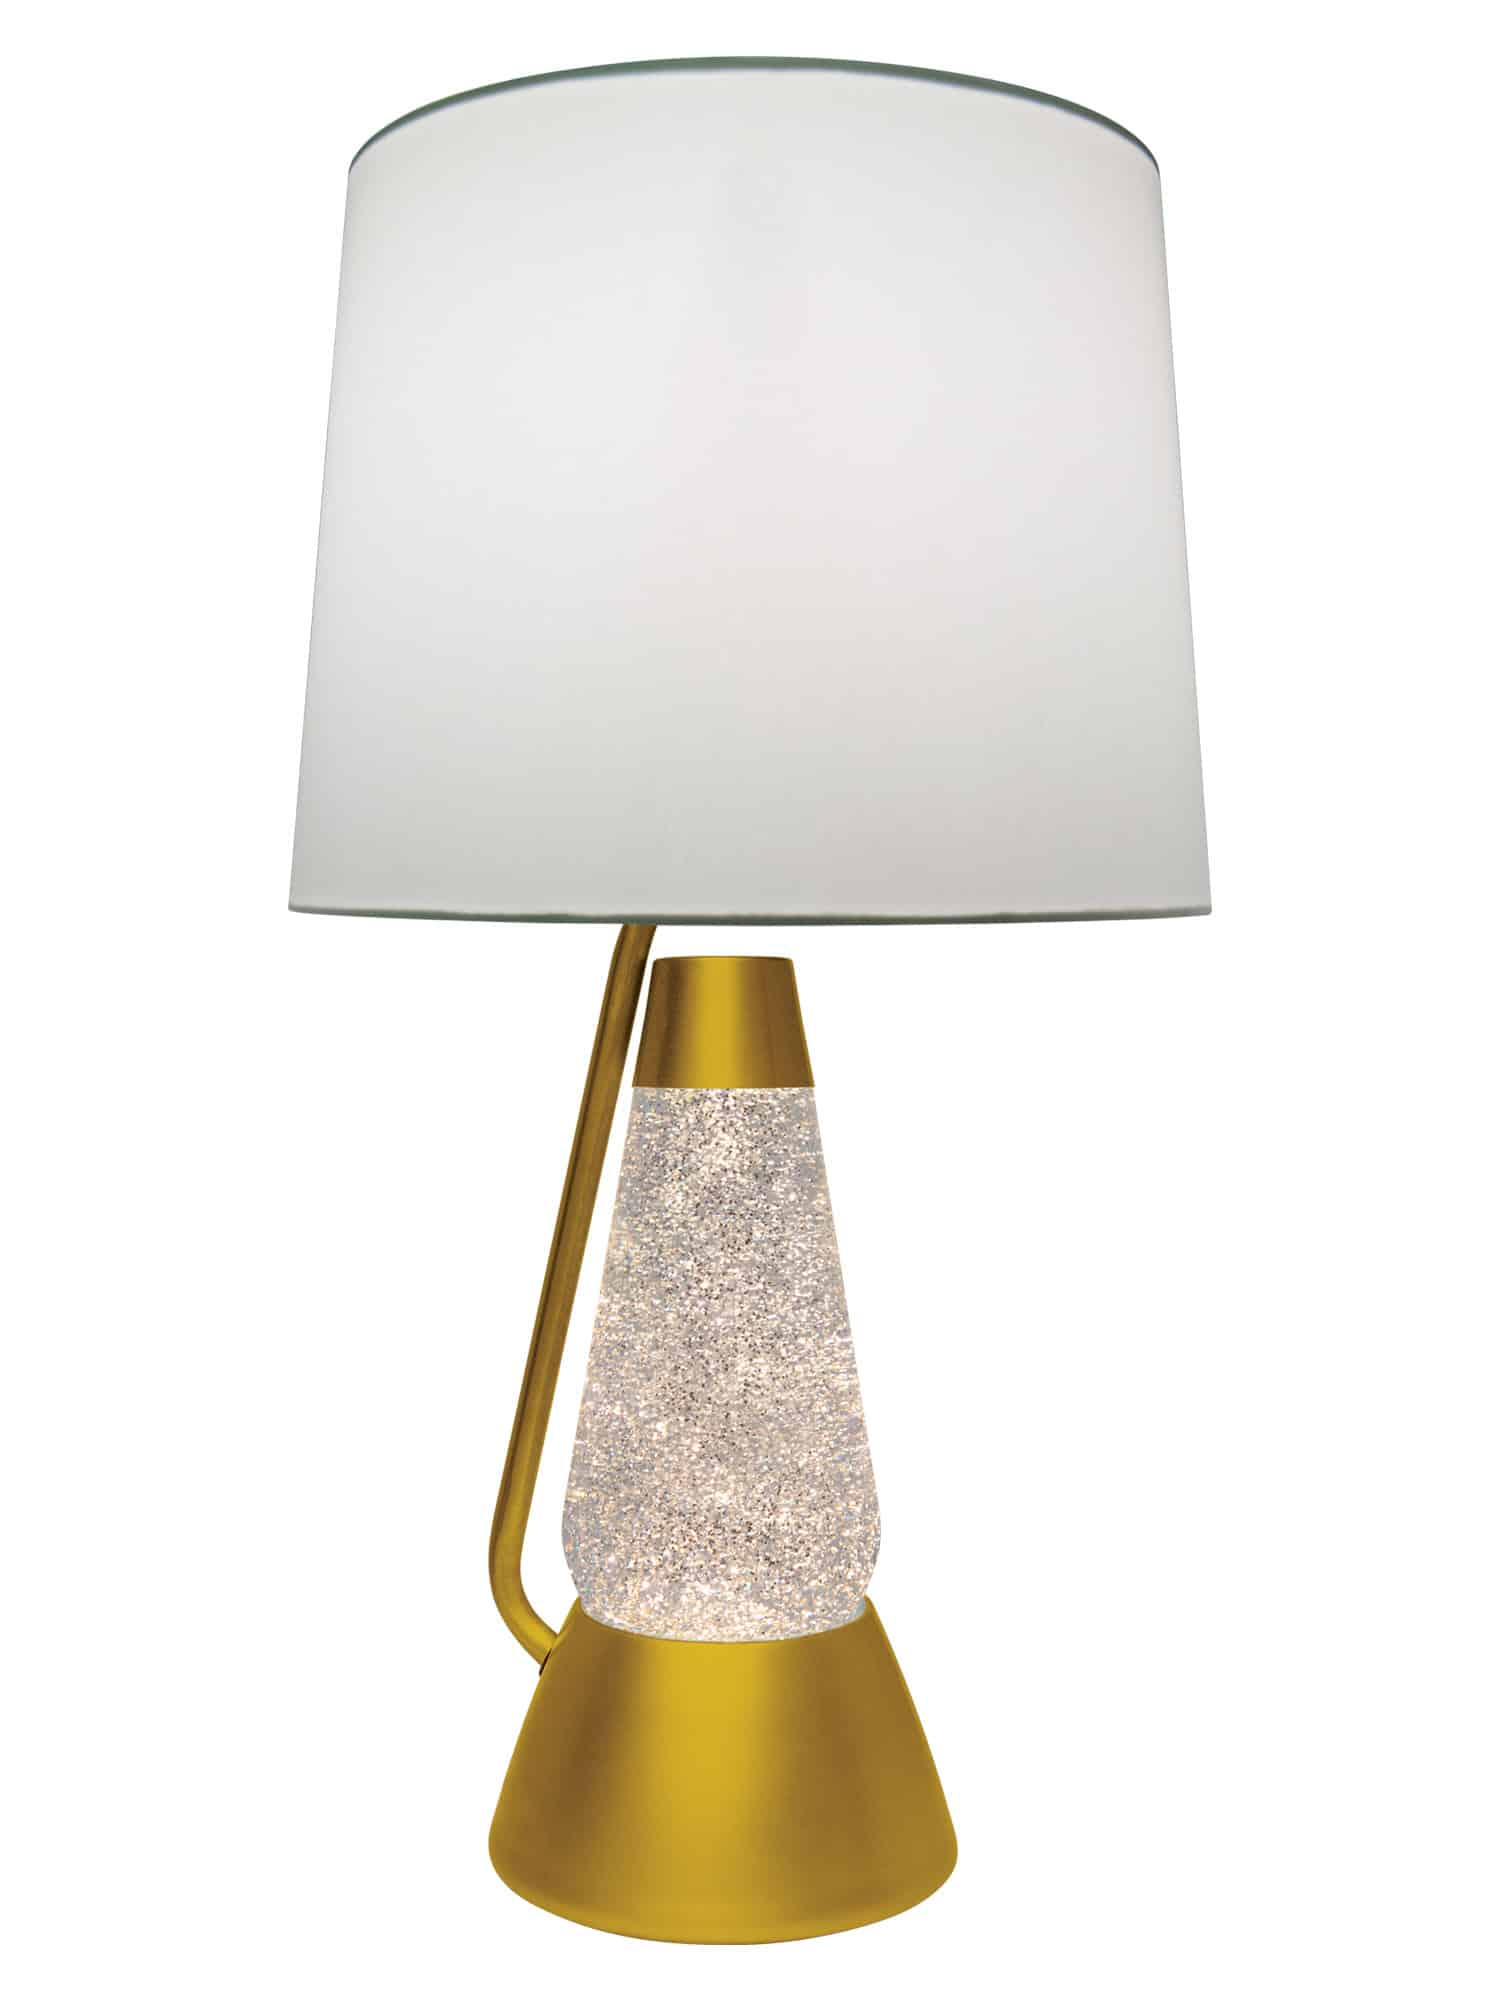 Model 3115. Gold Glitter With Clear Liquid Motion Lamp